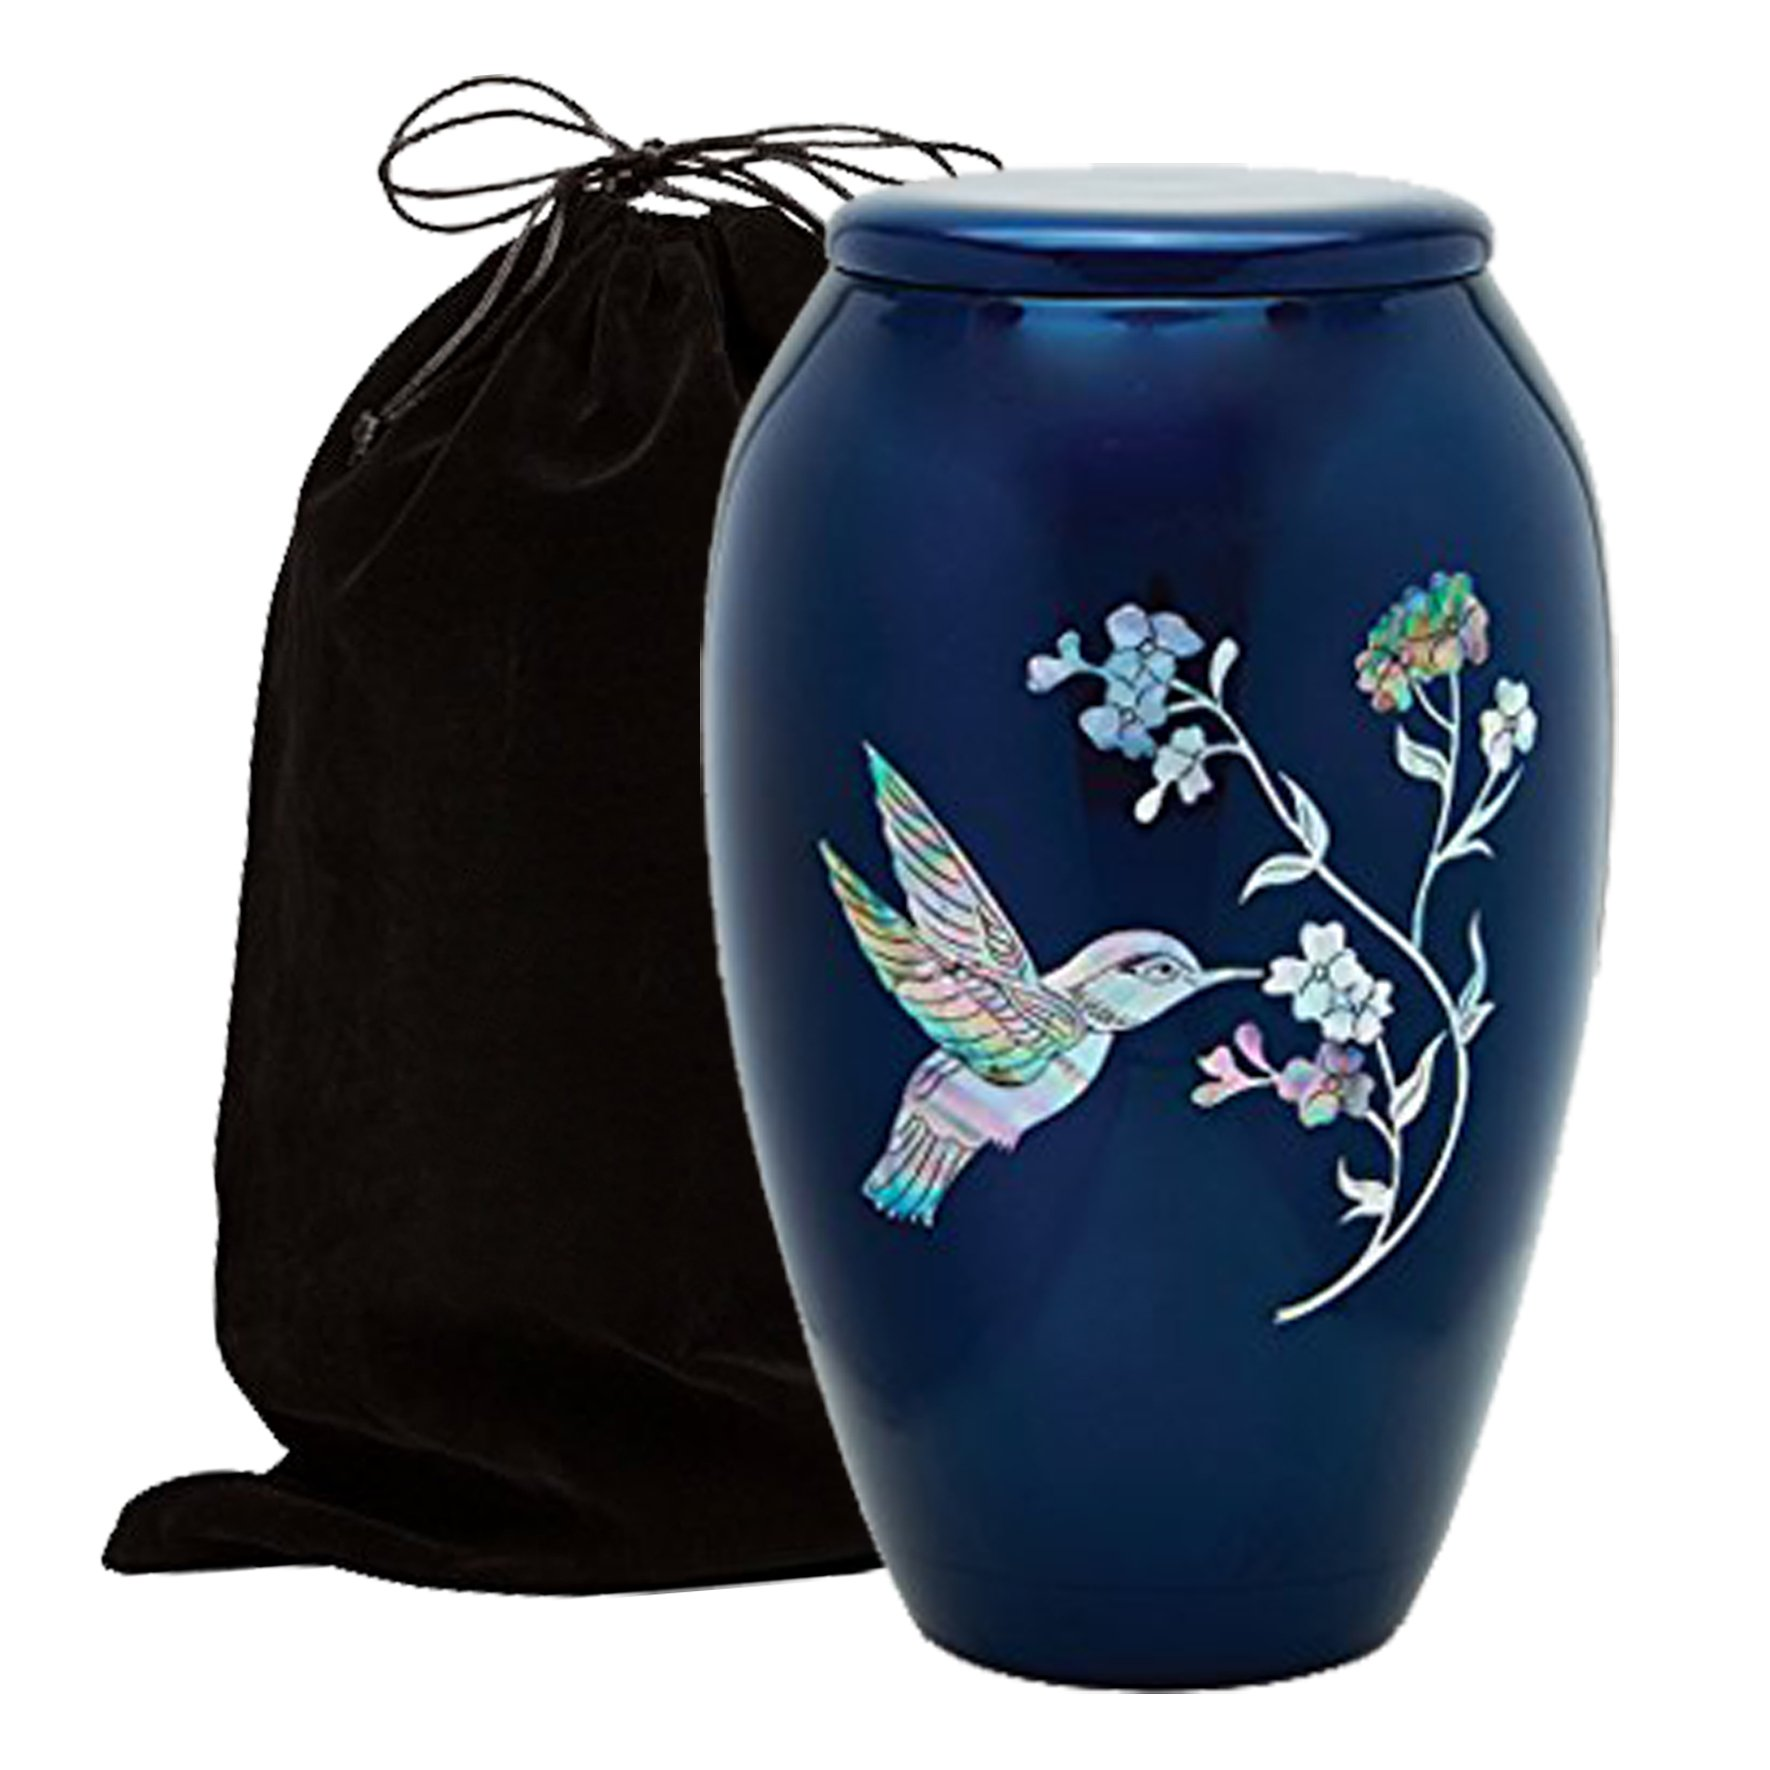 Mother of Pearl Inlaid Metal Cremation Urn - MOP Cremation Urn - Solid Metal Funeral Urn - Handcrafted Adult Funeral Urn for Ashes - Great Urn Deal with Free Bag (Hummingbird) by Trinityurns